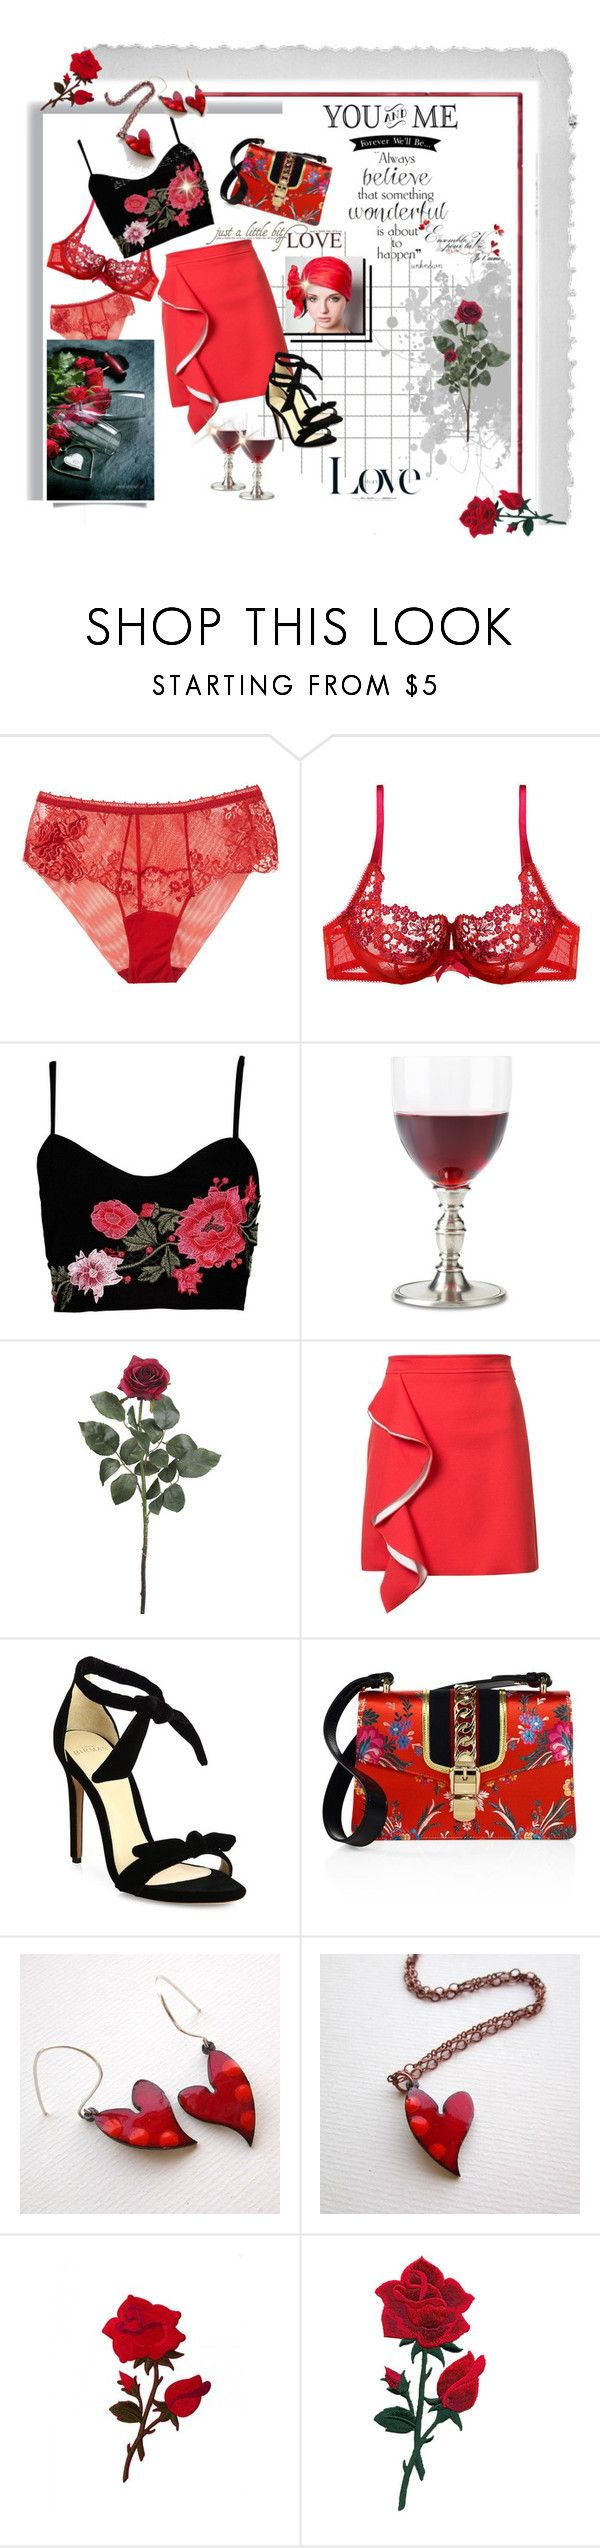 """""""Roses are Red"""" by lawvel ❤ liked on Polyvore featuring La Perla, Polaroid, Gossard, Boohoo, WALL, Match, MSGM, Alexandre Birman, David Beckham and Gucci"""